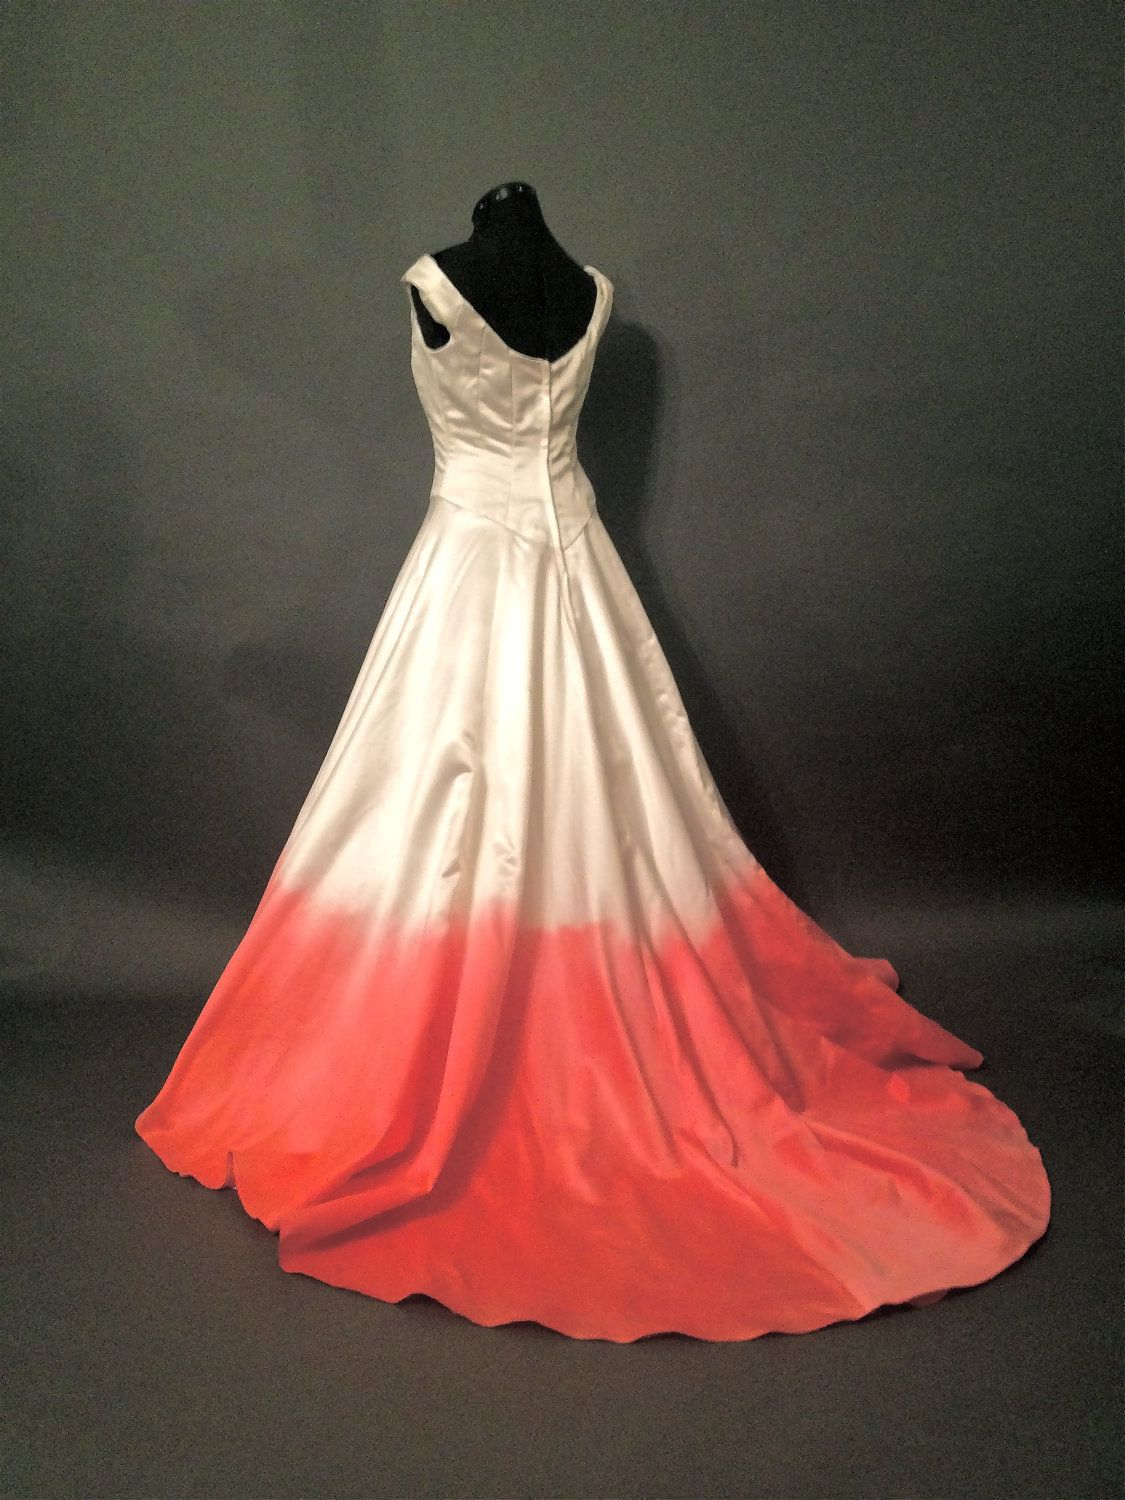 Ombre Dyed Pink And Ivory Gwen Stefani Style Wedding Dress 29900 Via Etsy